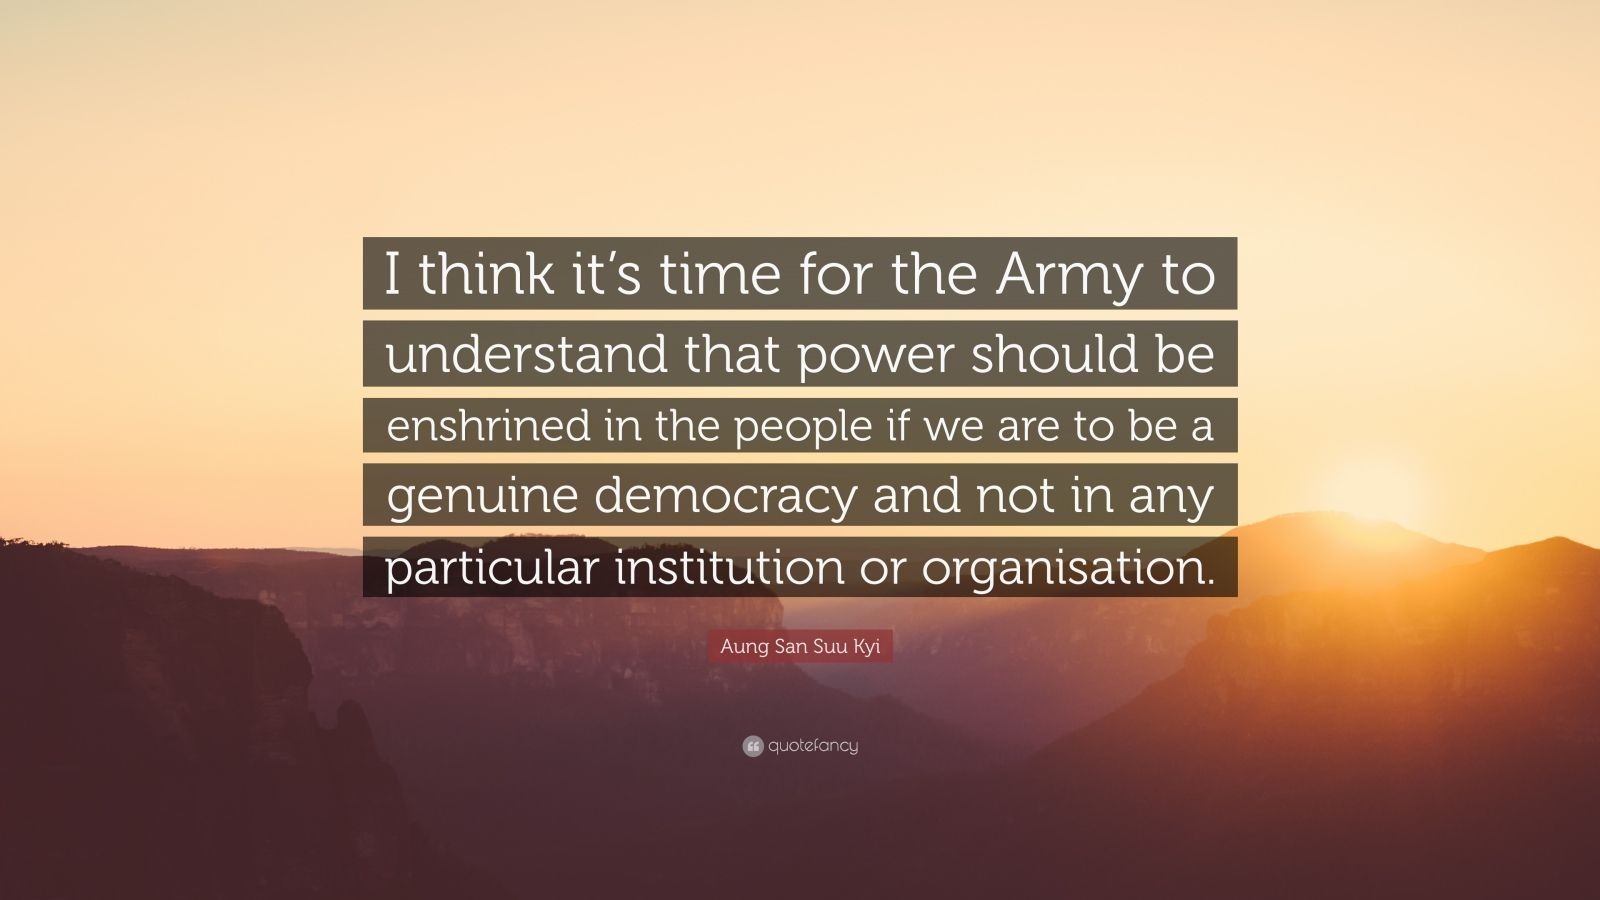 """Aung San Suu Kyi Quote: """"I think it's time for the Army to understand that power should be enshrined in the people if we are to be a genuine democracy and not in any particular institution or organisation."""""""